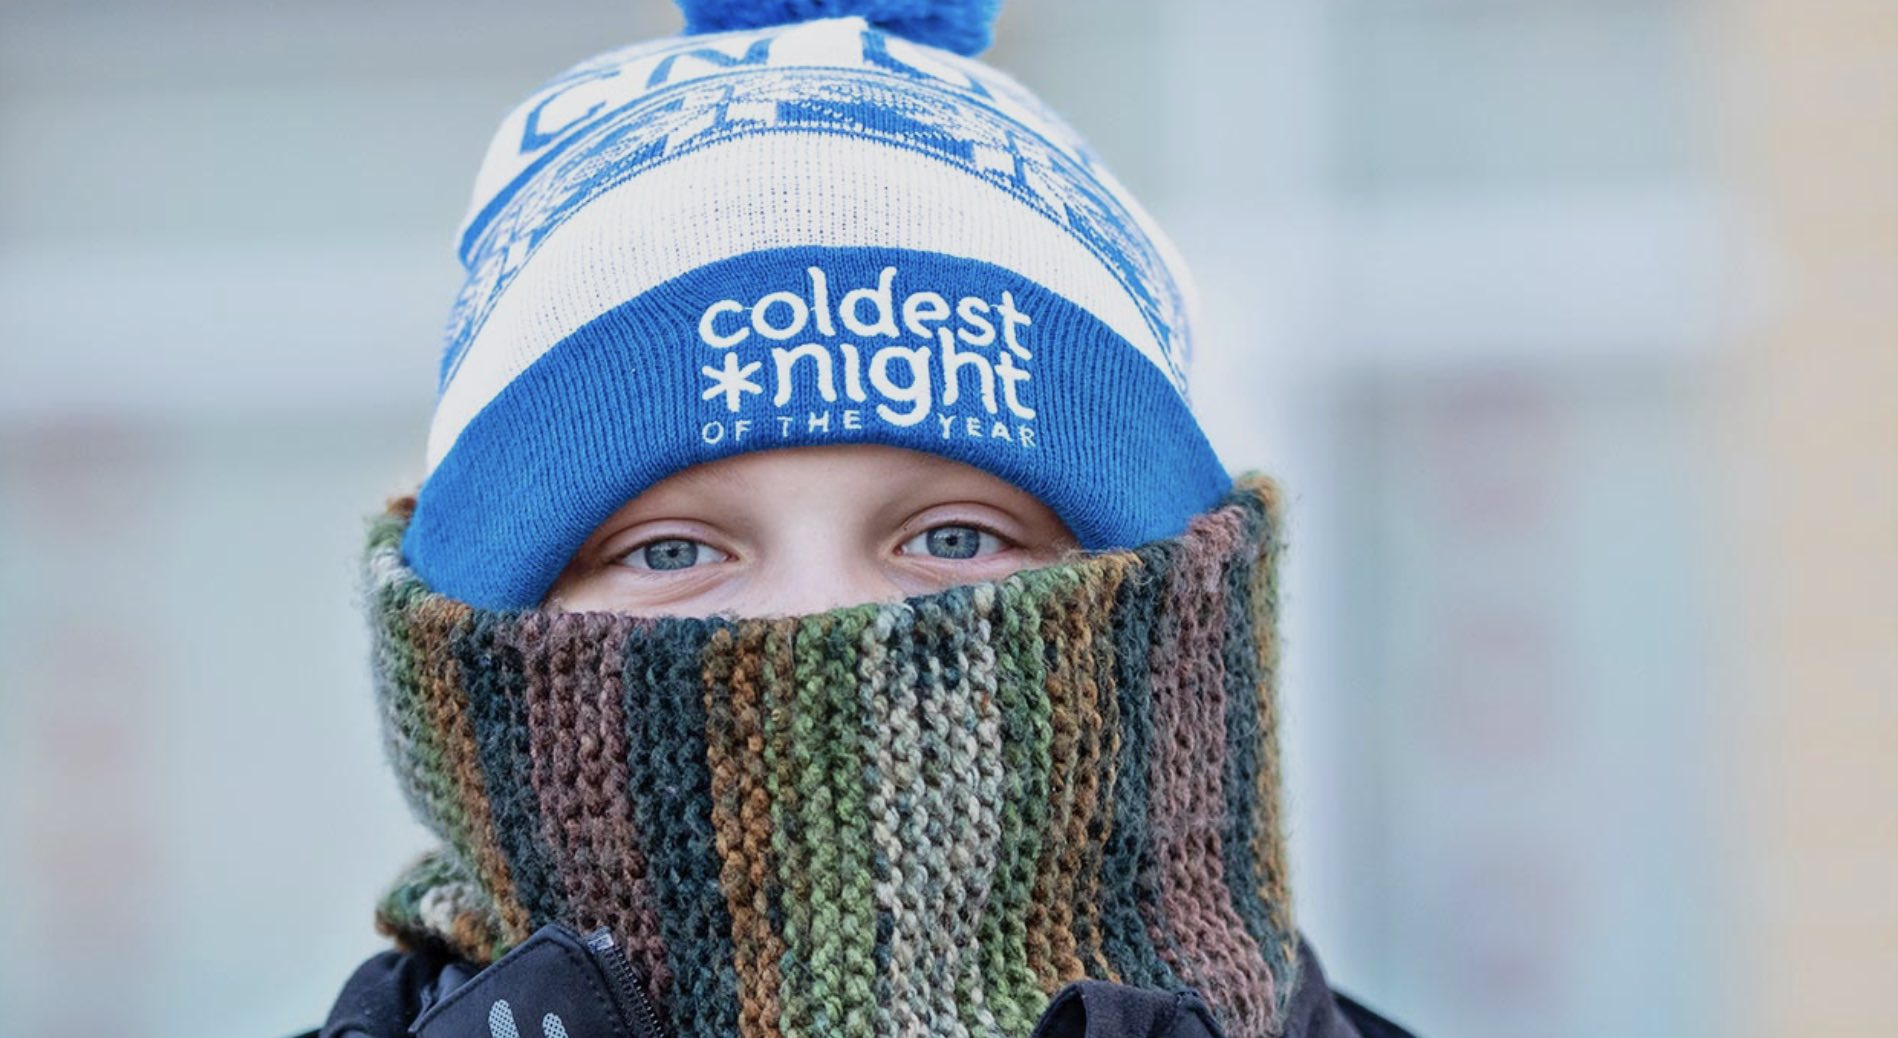 The Lighthouse Orillia is gearing up for the Coldest Night of the Year fundraiser, with a young boy dressed in hat and scarf getting ready to go outside